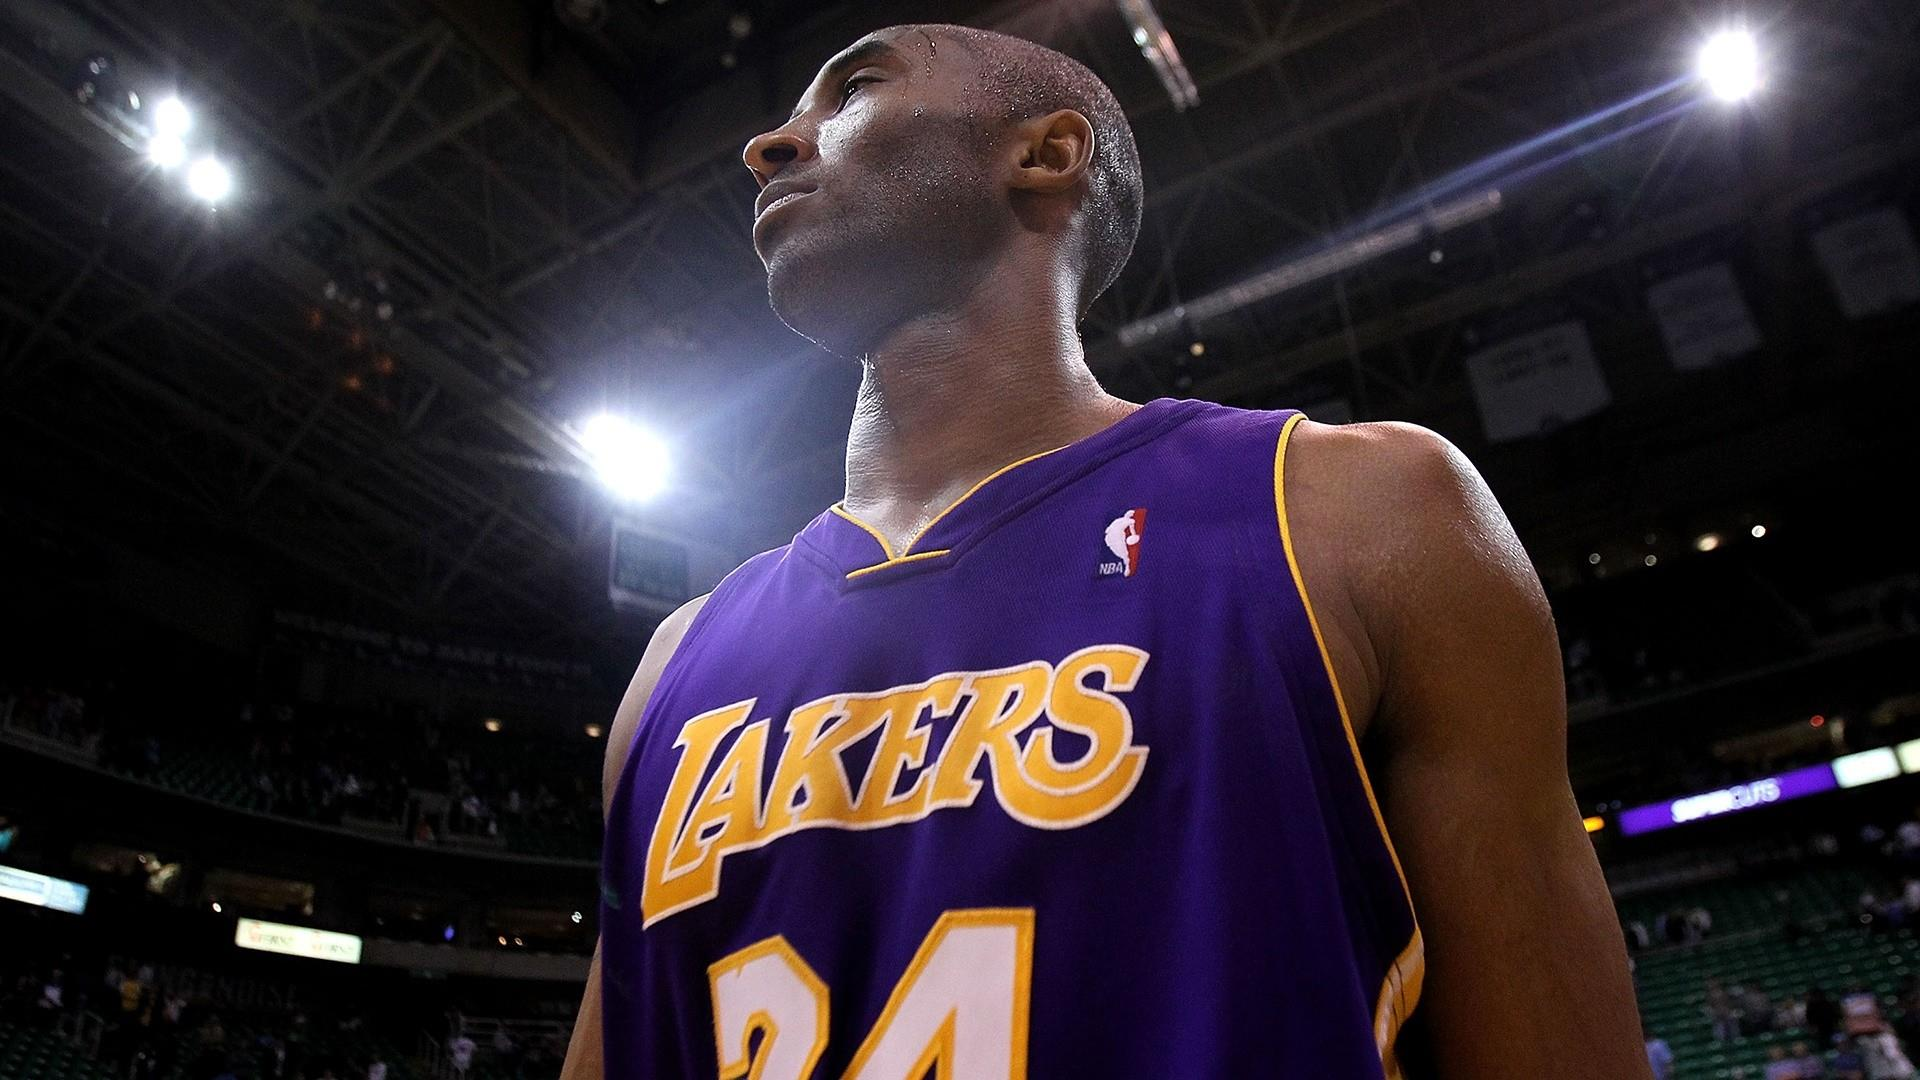 """Kobe Bryant Act,"" A New California Law Bans Sharing Crime Scene Photos After leaked Images Of Kobe Bryant's Helicopter Crash"